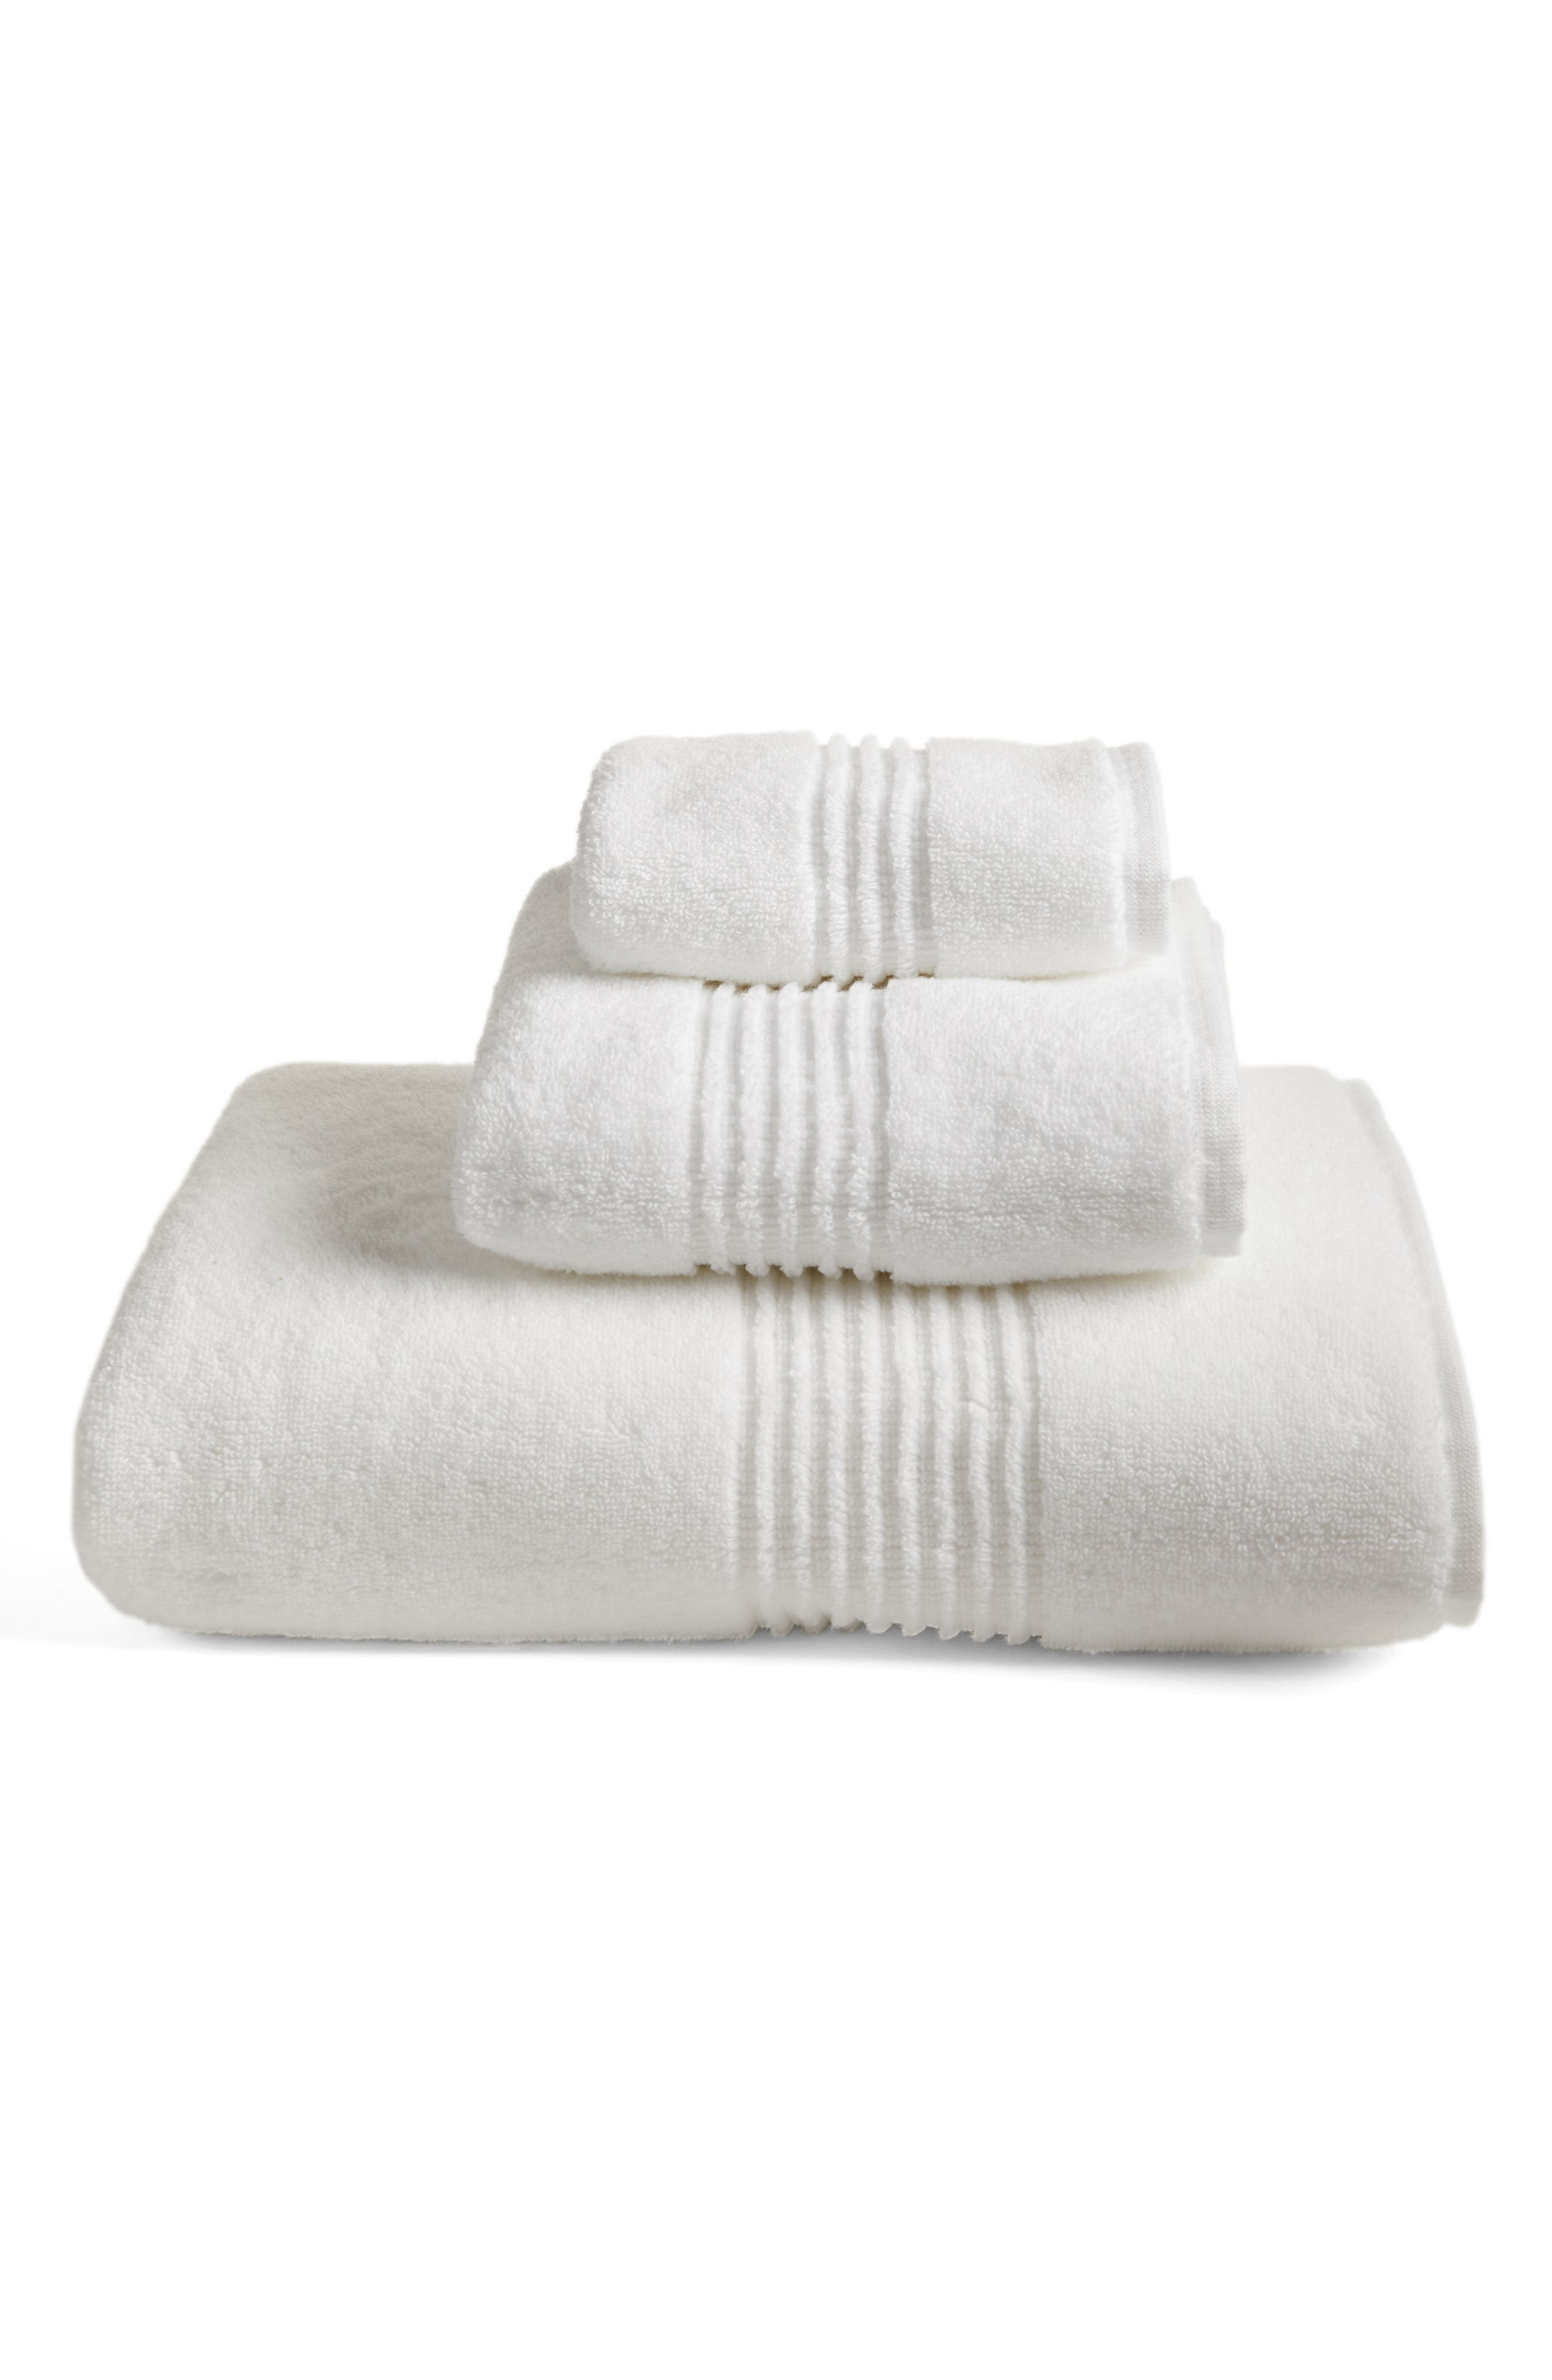 NORDSTROM AT HOME, Organic Hydrocotton Heathered Bath Towel, Main thumbnail 1, color, WHITE